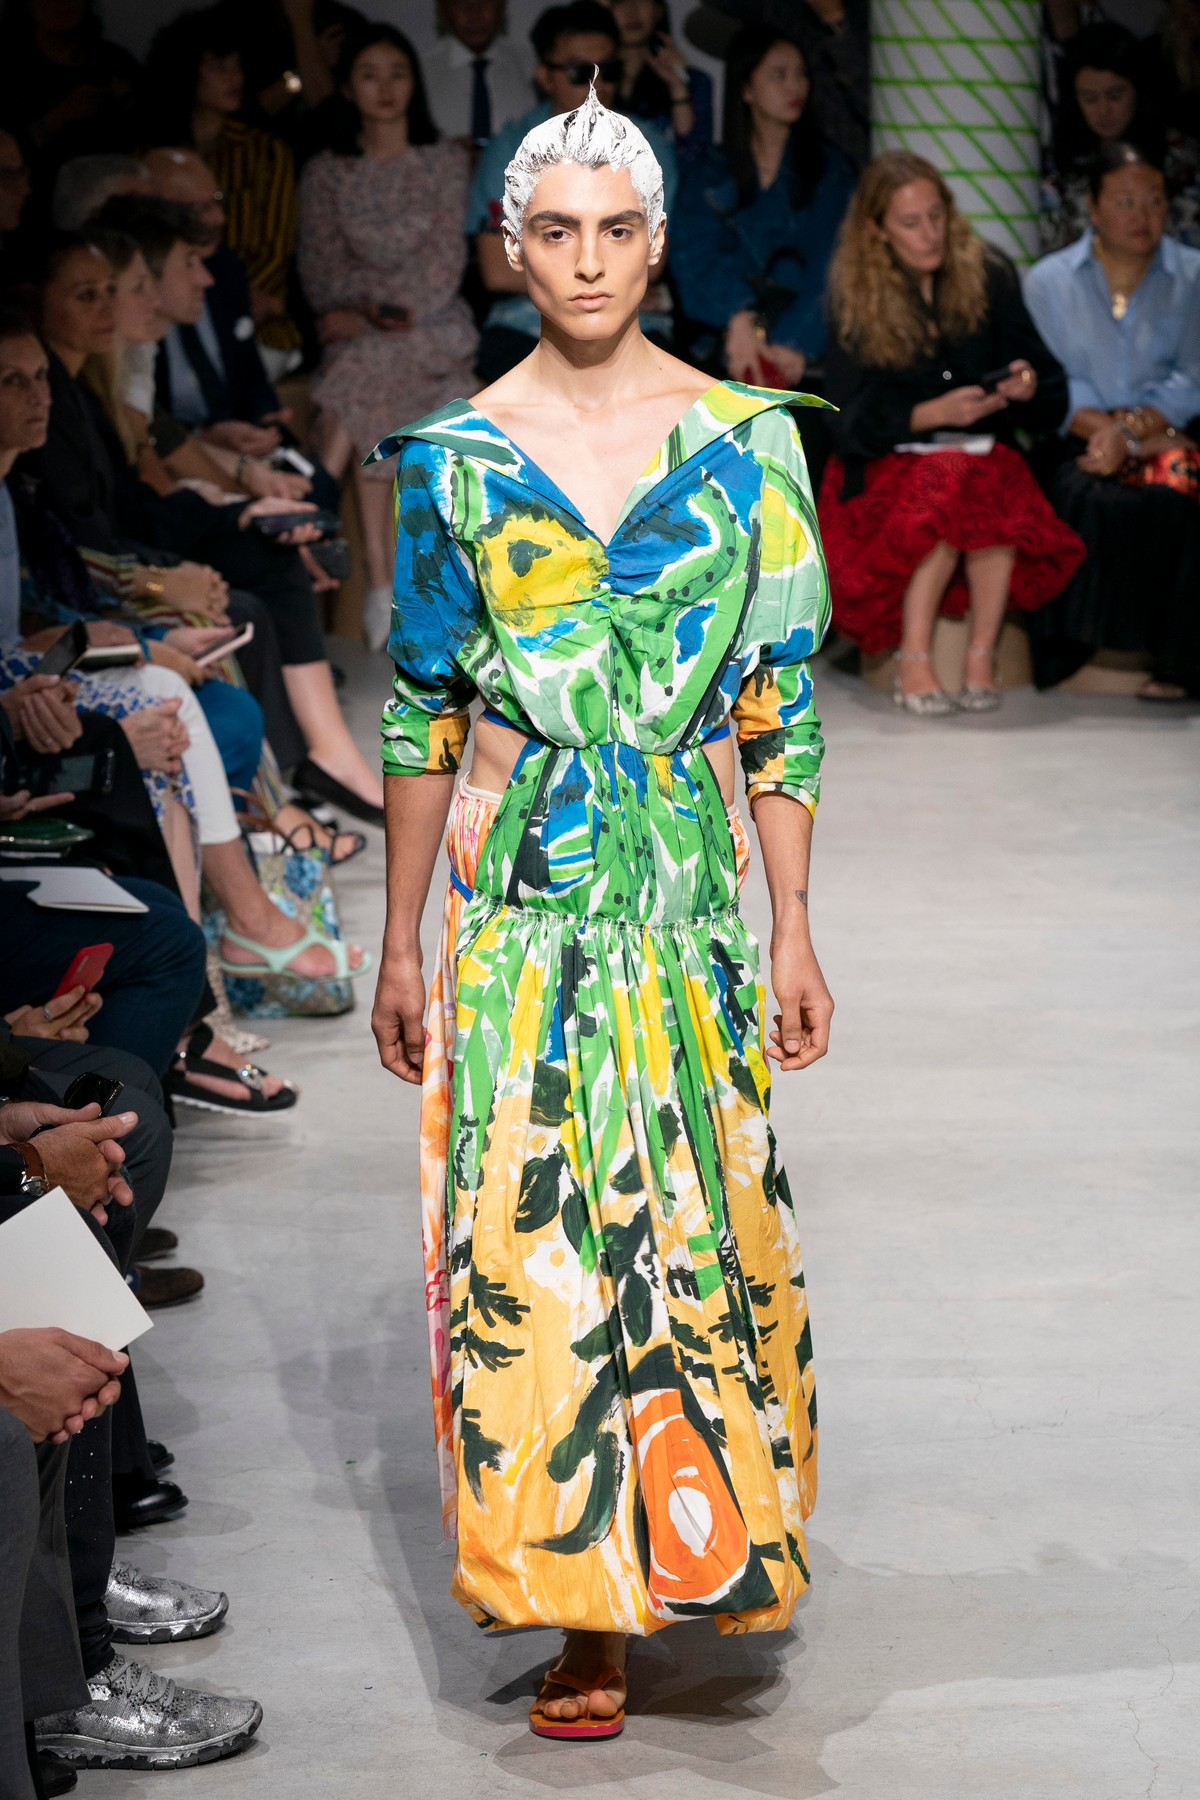 Marni catwalk fashion show SS20 s2020 at Milan Fashion Week,  Milano, Italy in September 2019.., Image: 472240369, License: Rights-managed, Restrictions: , Model Release: no, Credit line: Profimedia, Capital pictures, Rick Gold